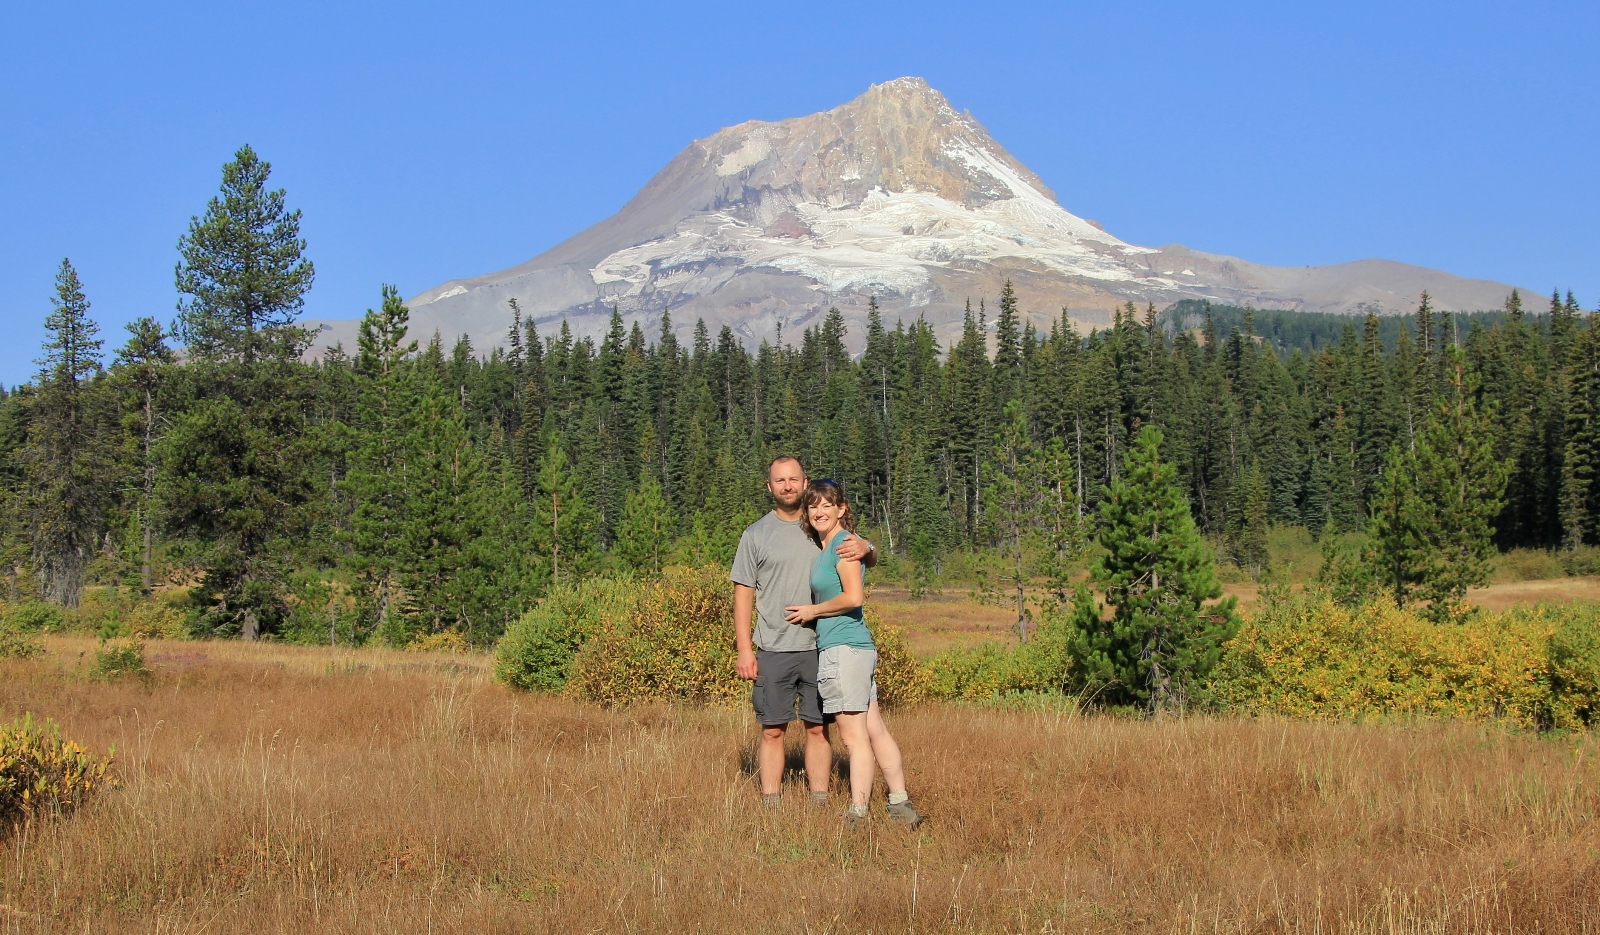 09-12-15 Mt. Hood Elk Meadows Gnarl Ridge (25)